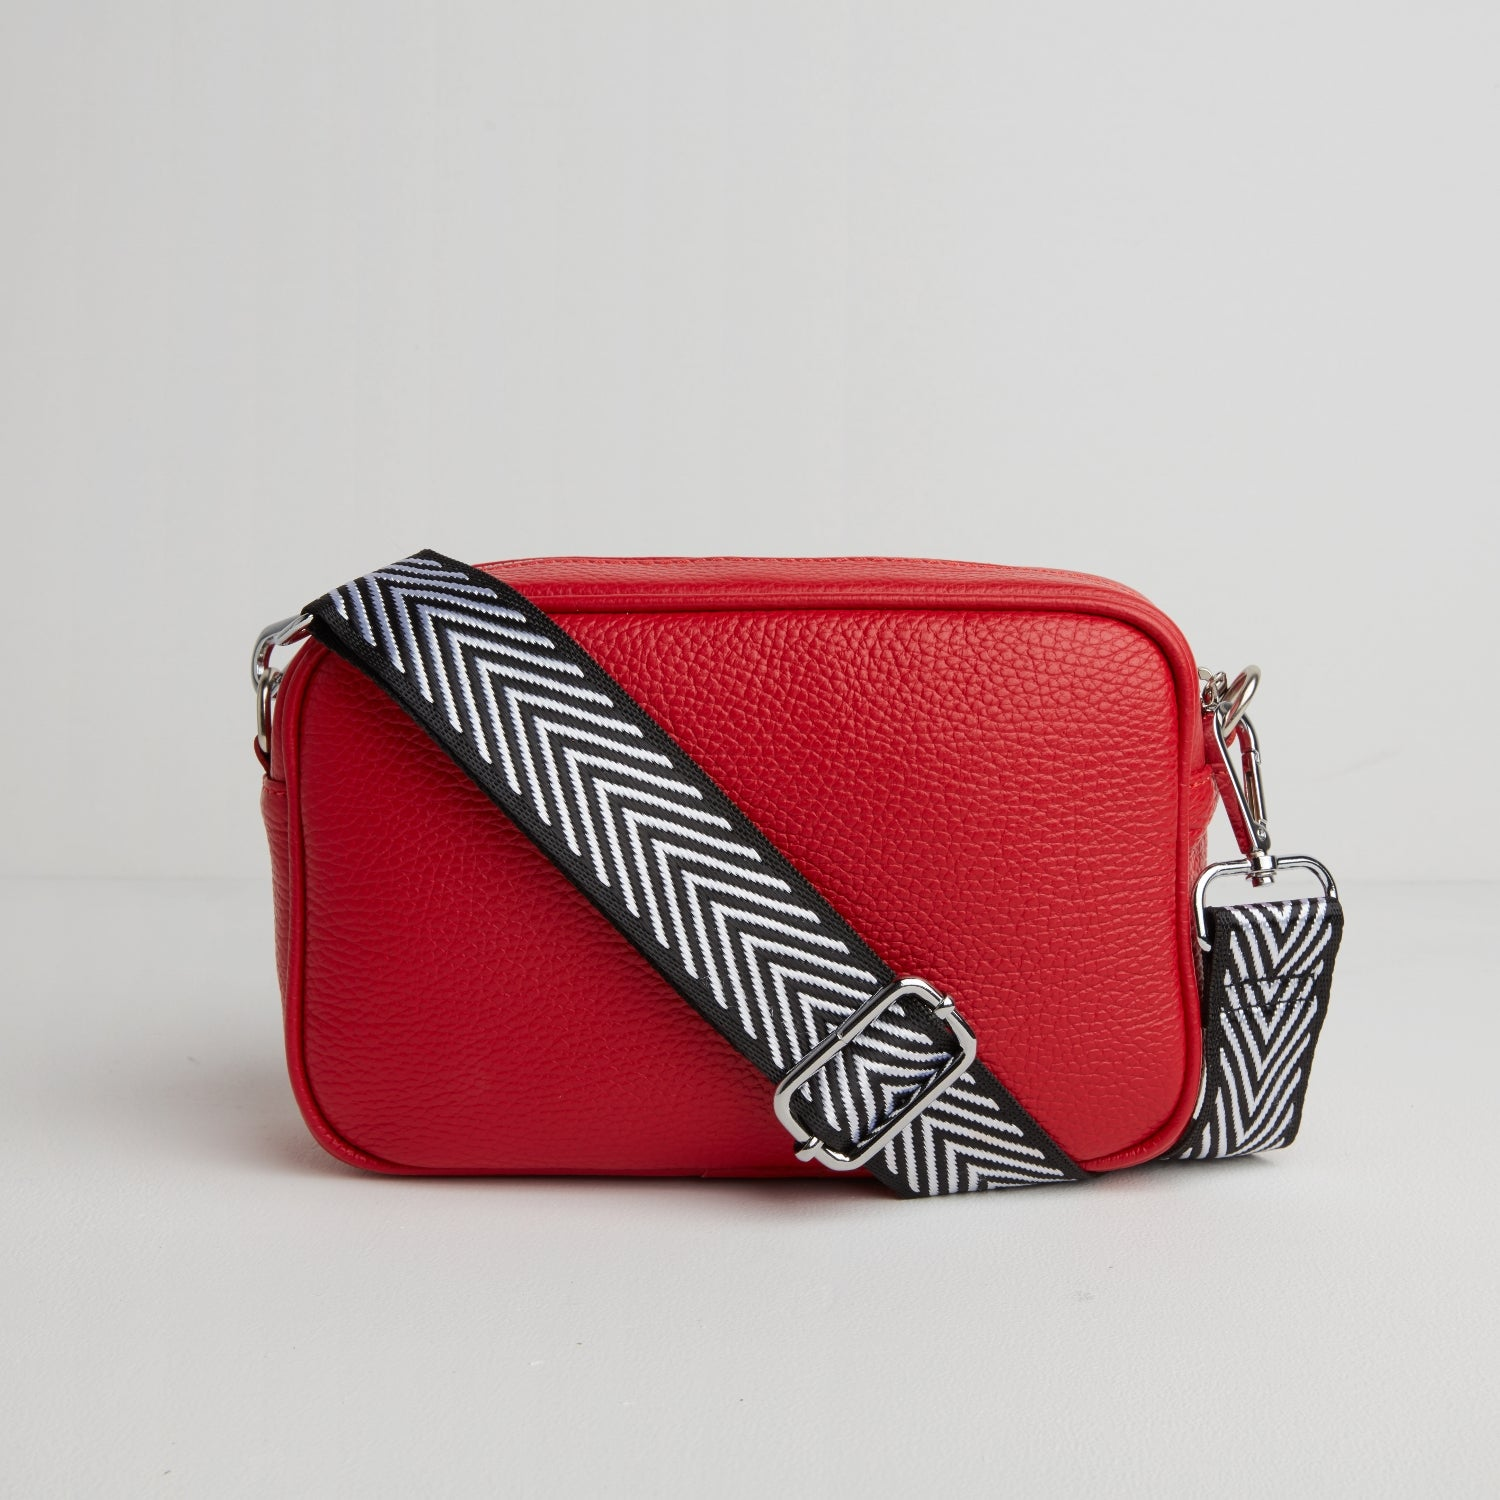 Florence - Crossbody Bag in Red with Black White Strap